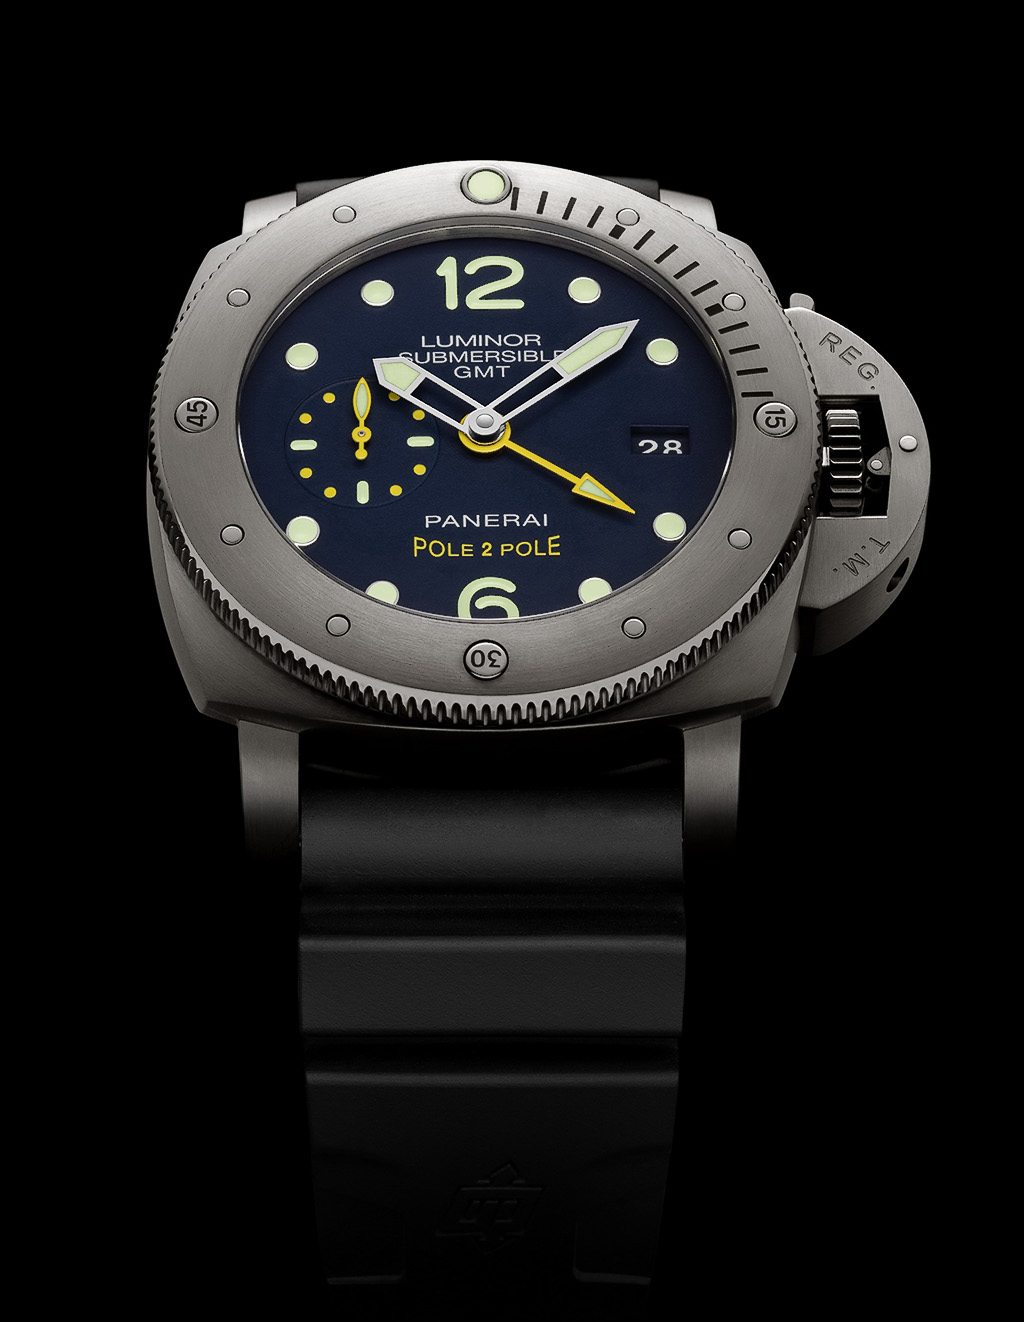 Luminor Submersible 1950 3 Days GMT Automatic copy watch